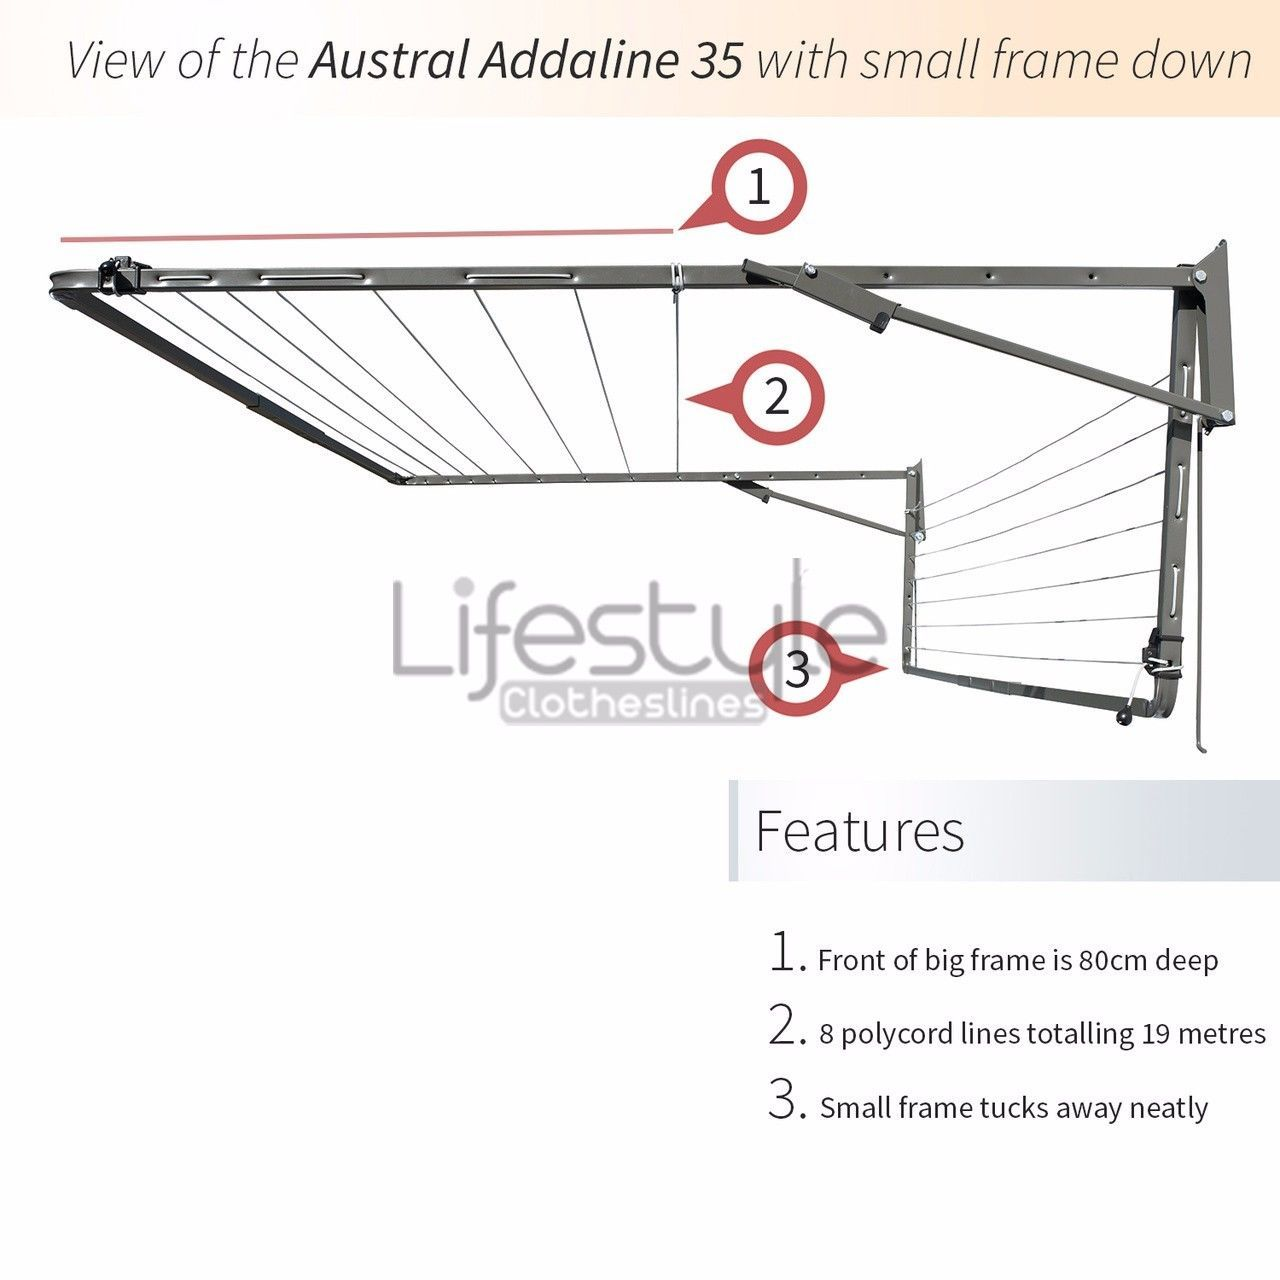 New Large Fold Down Clothesline Folding Washing Line Wall Mounted Addaline 35 Washing Line Clothes Line Wall Mount